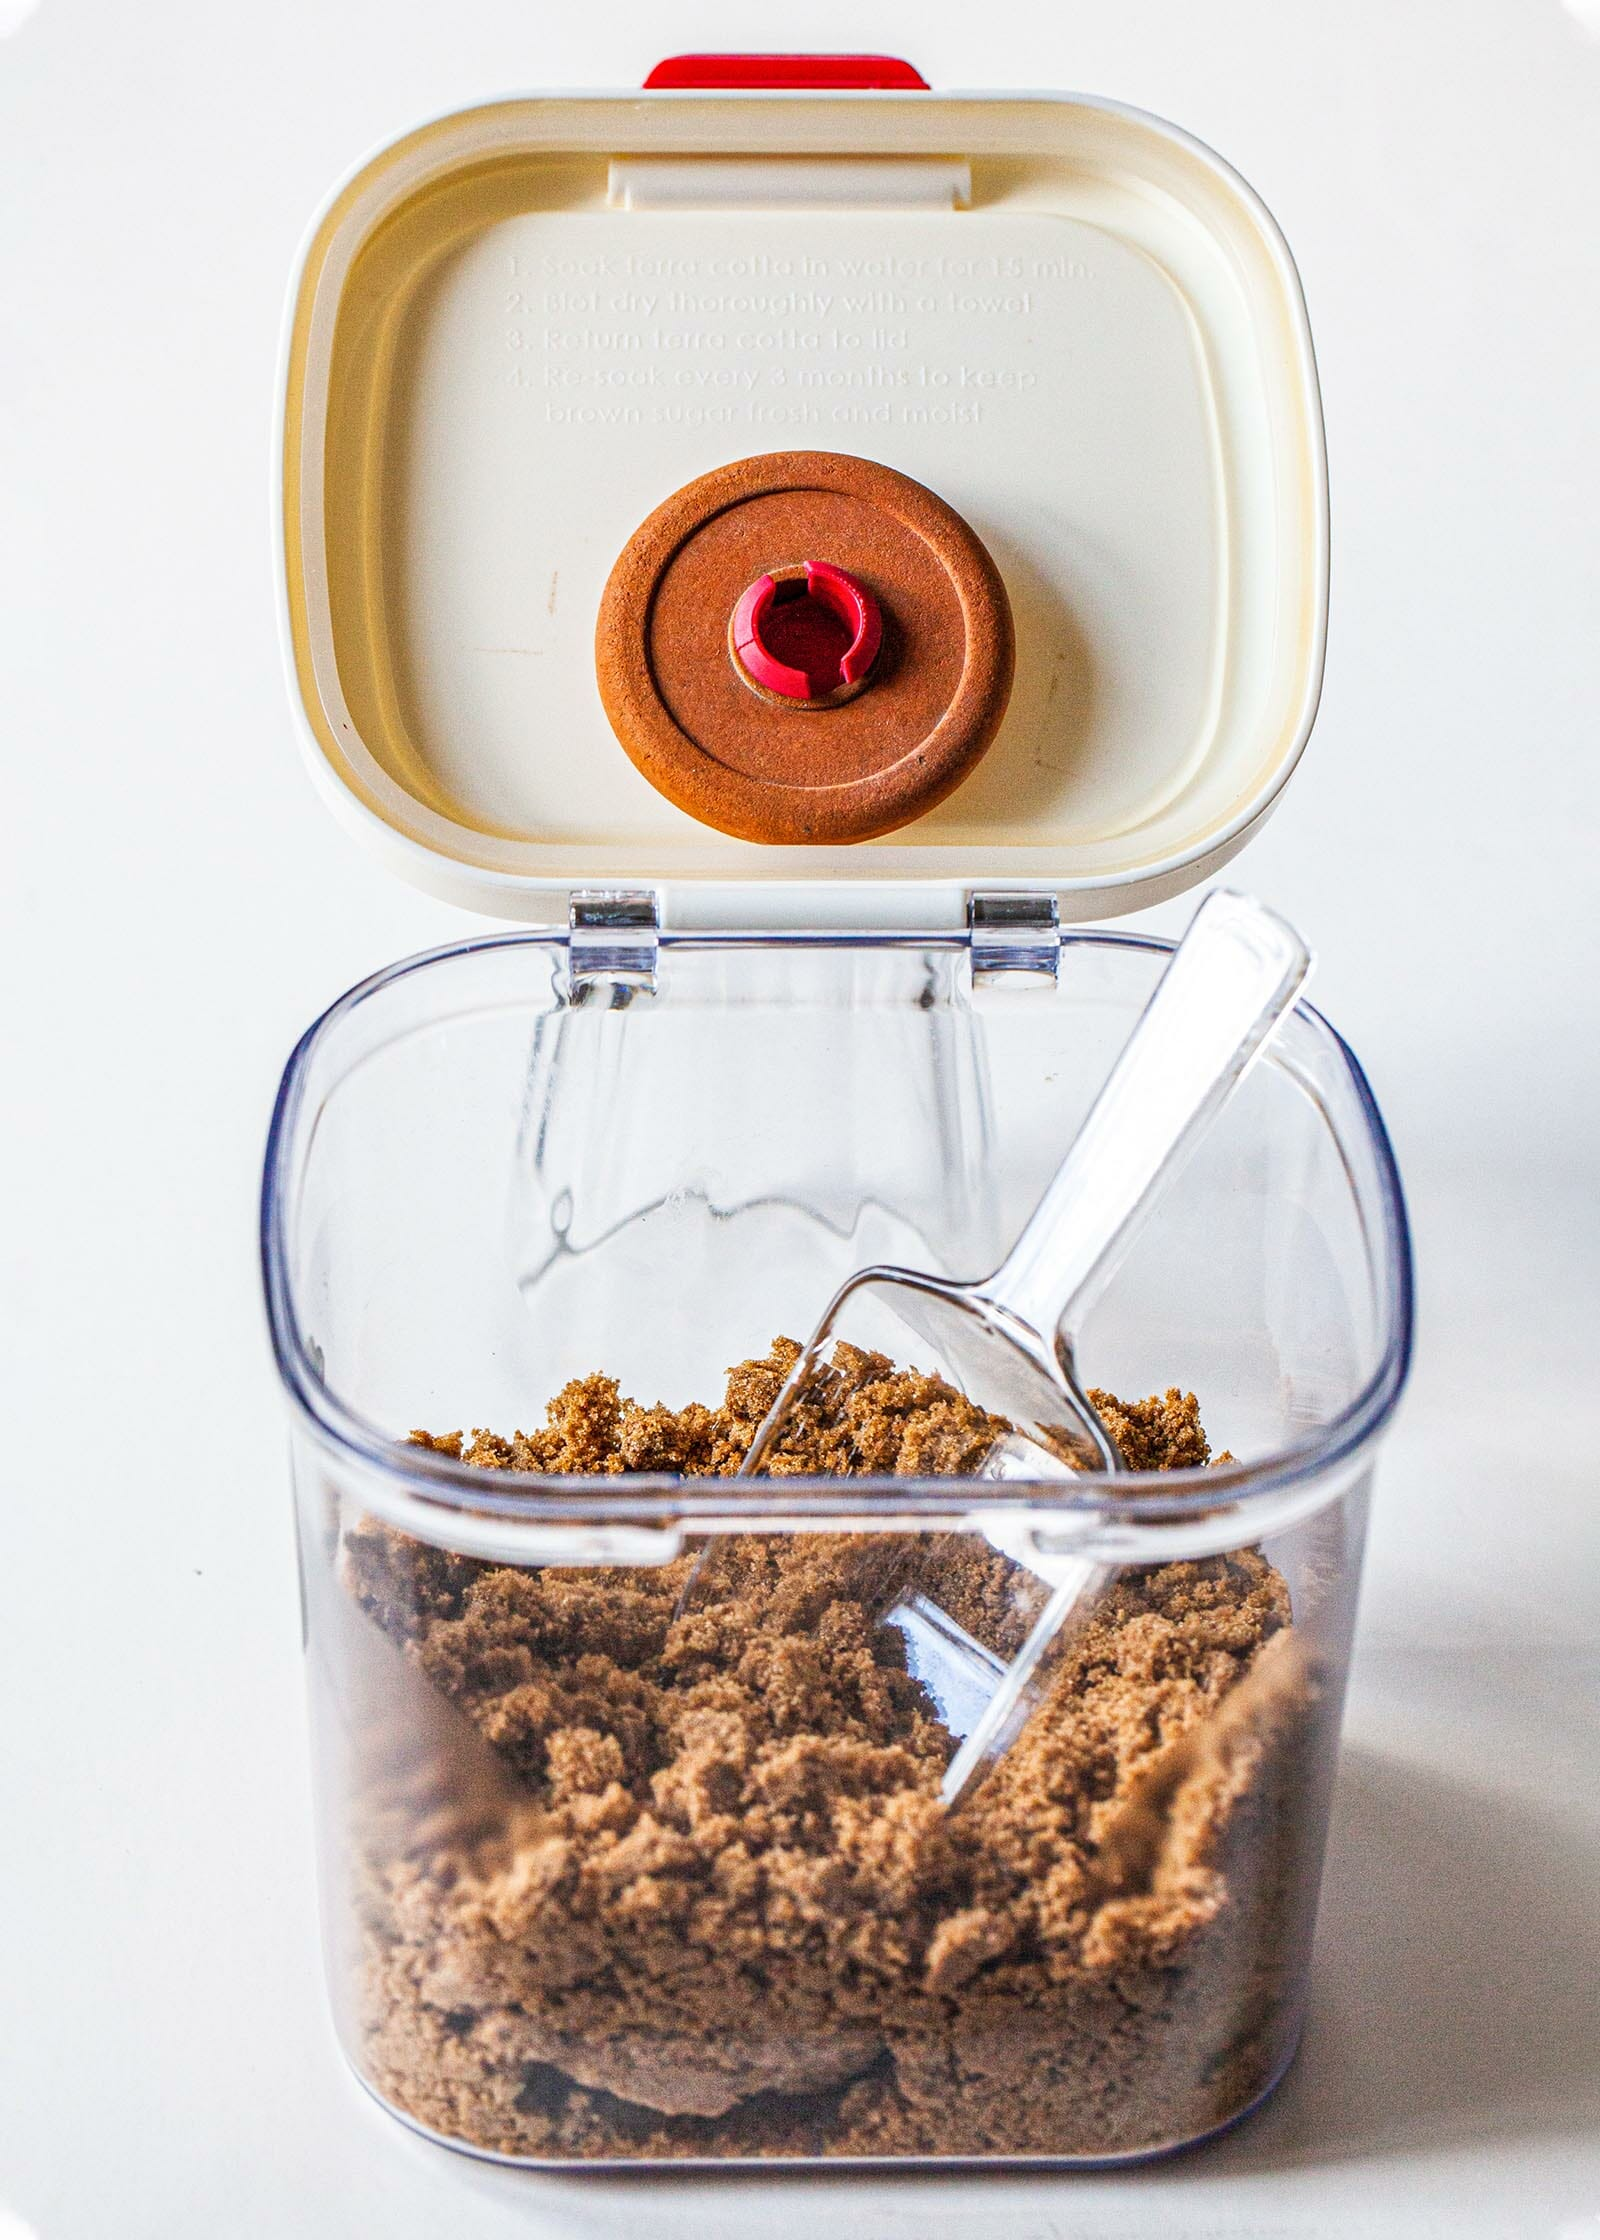 How to soften brown sugar by putting it in a brown sugar keeper.